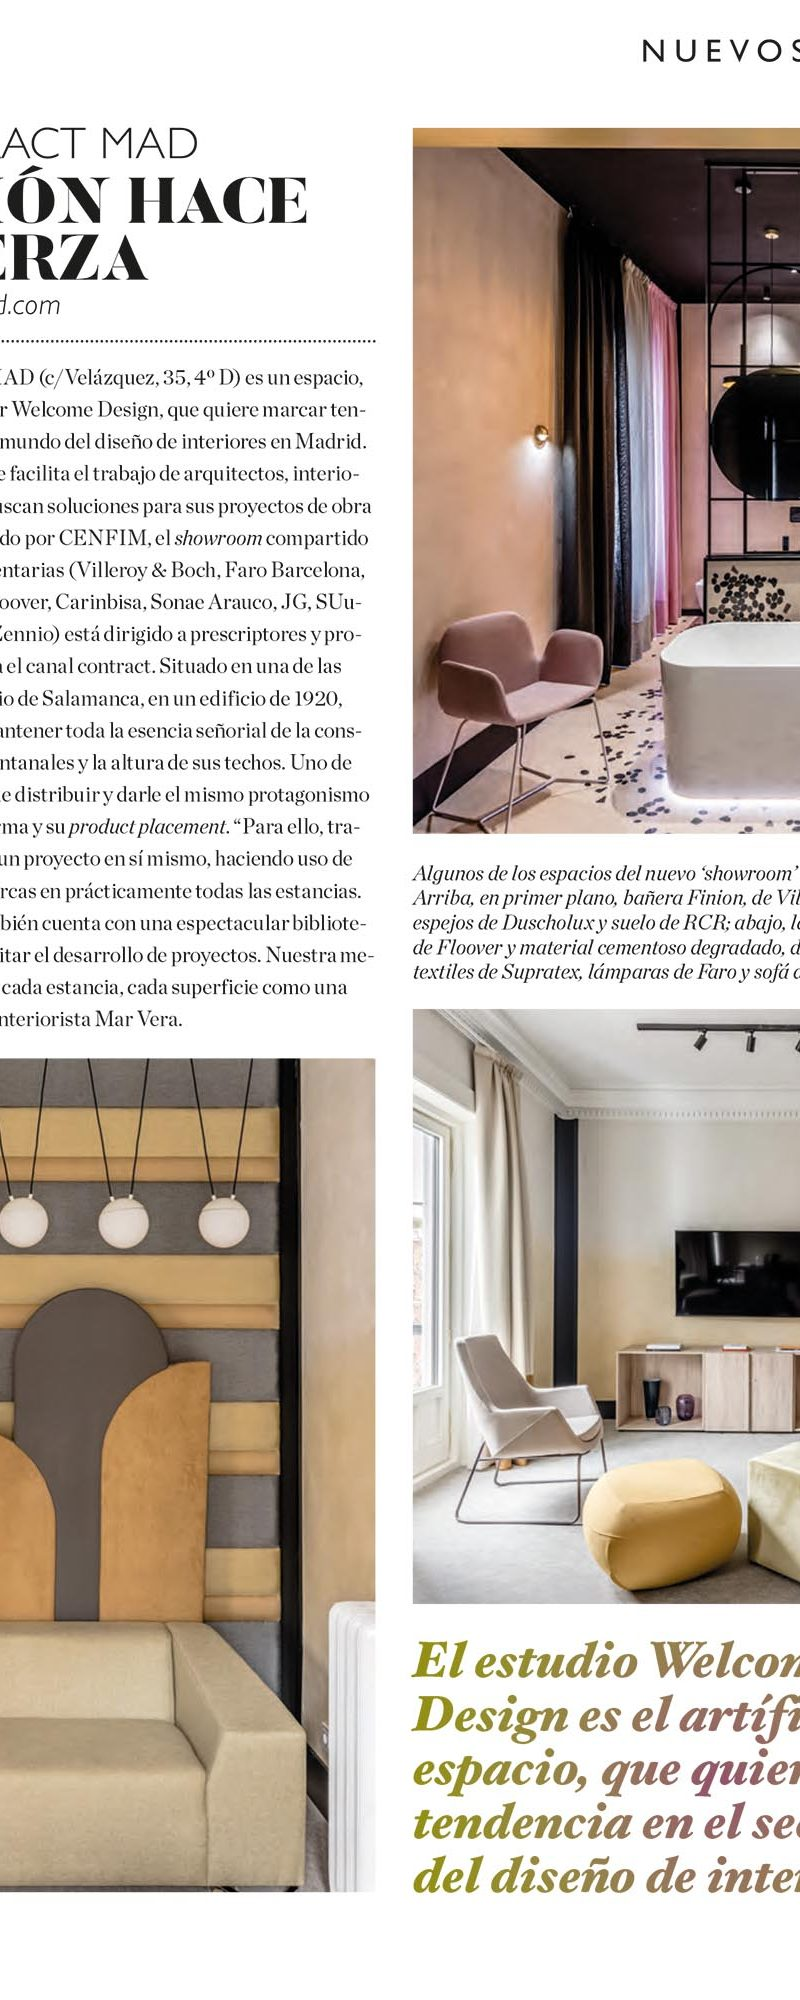 INTERIORES Nº 229. DOCONTRACT MAD